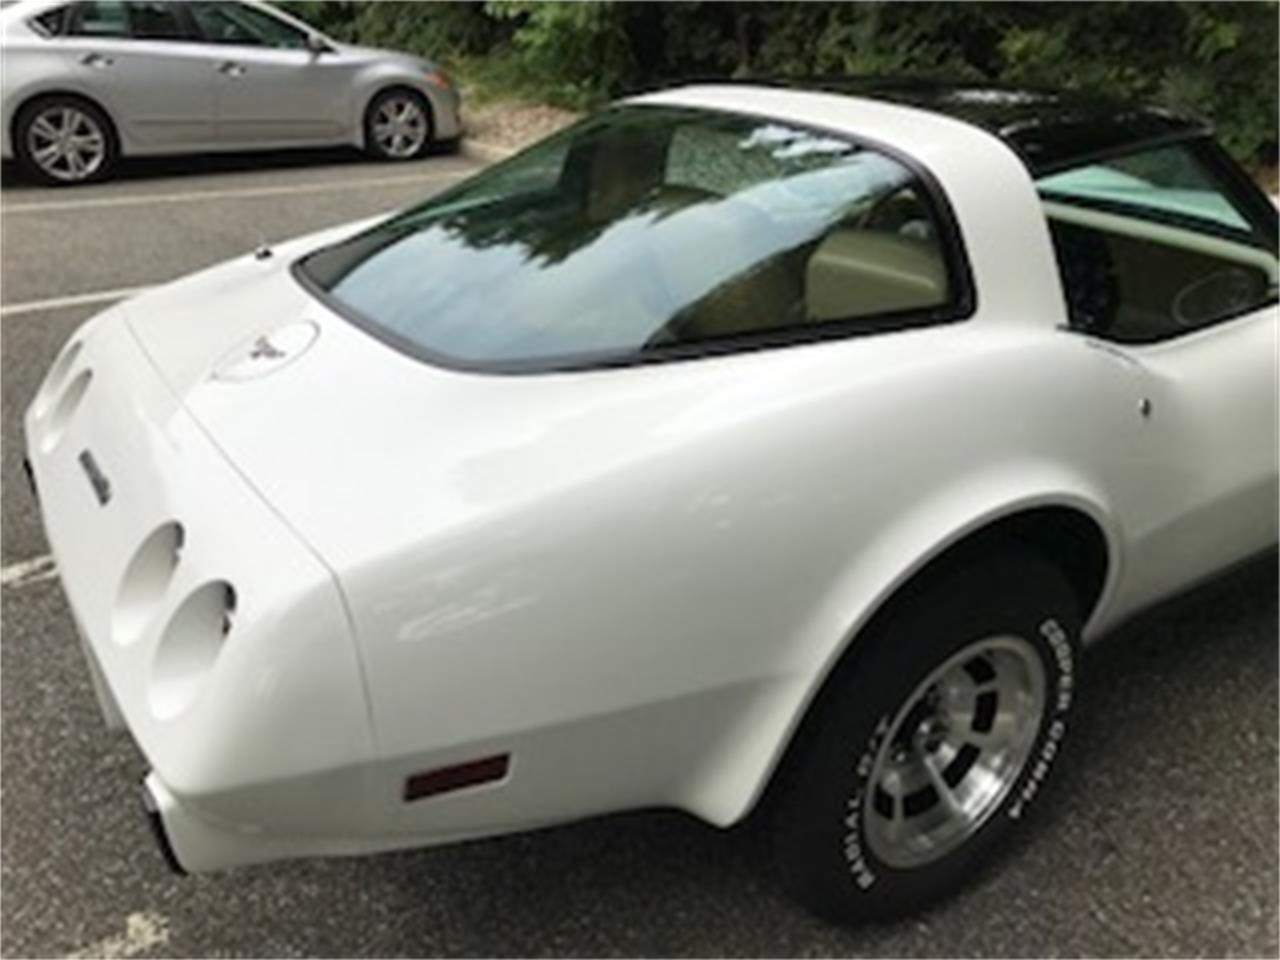 Large Picture of 1979 Chevrolet Corvette located in Westwood New Jersey - $10,500.00 - QIUD